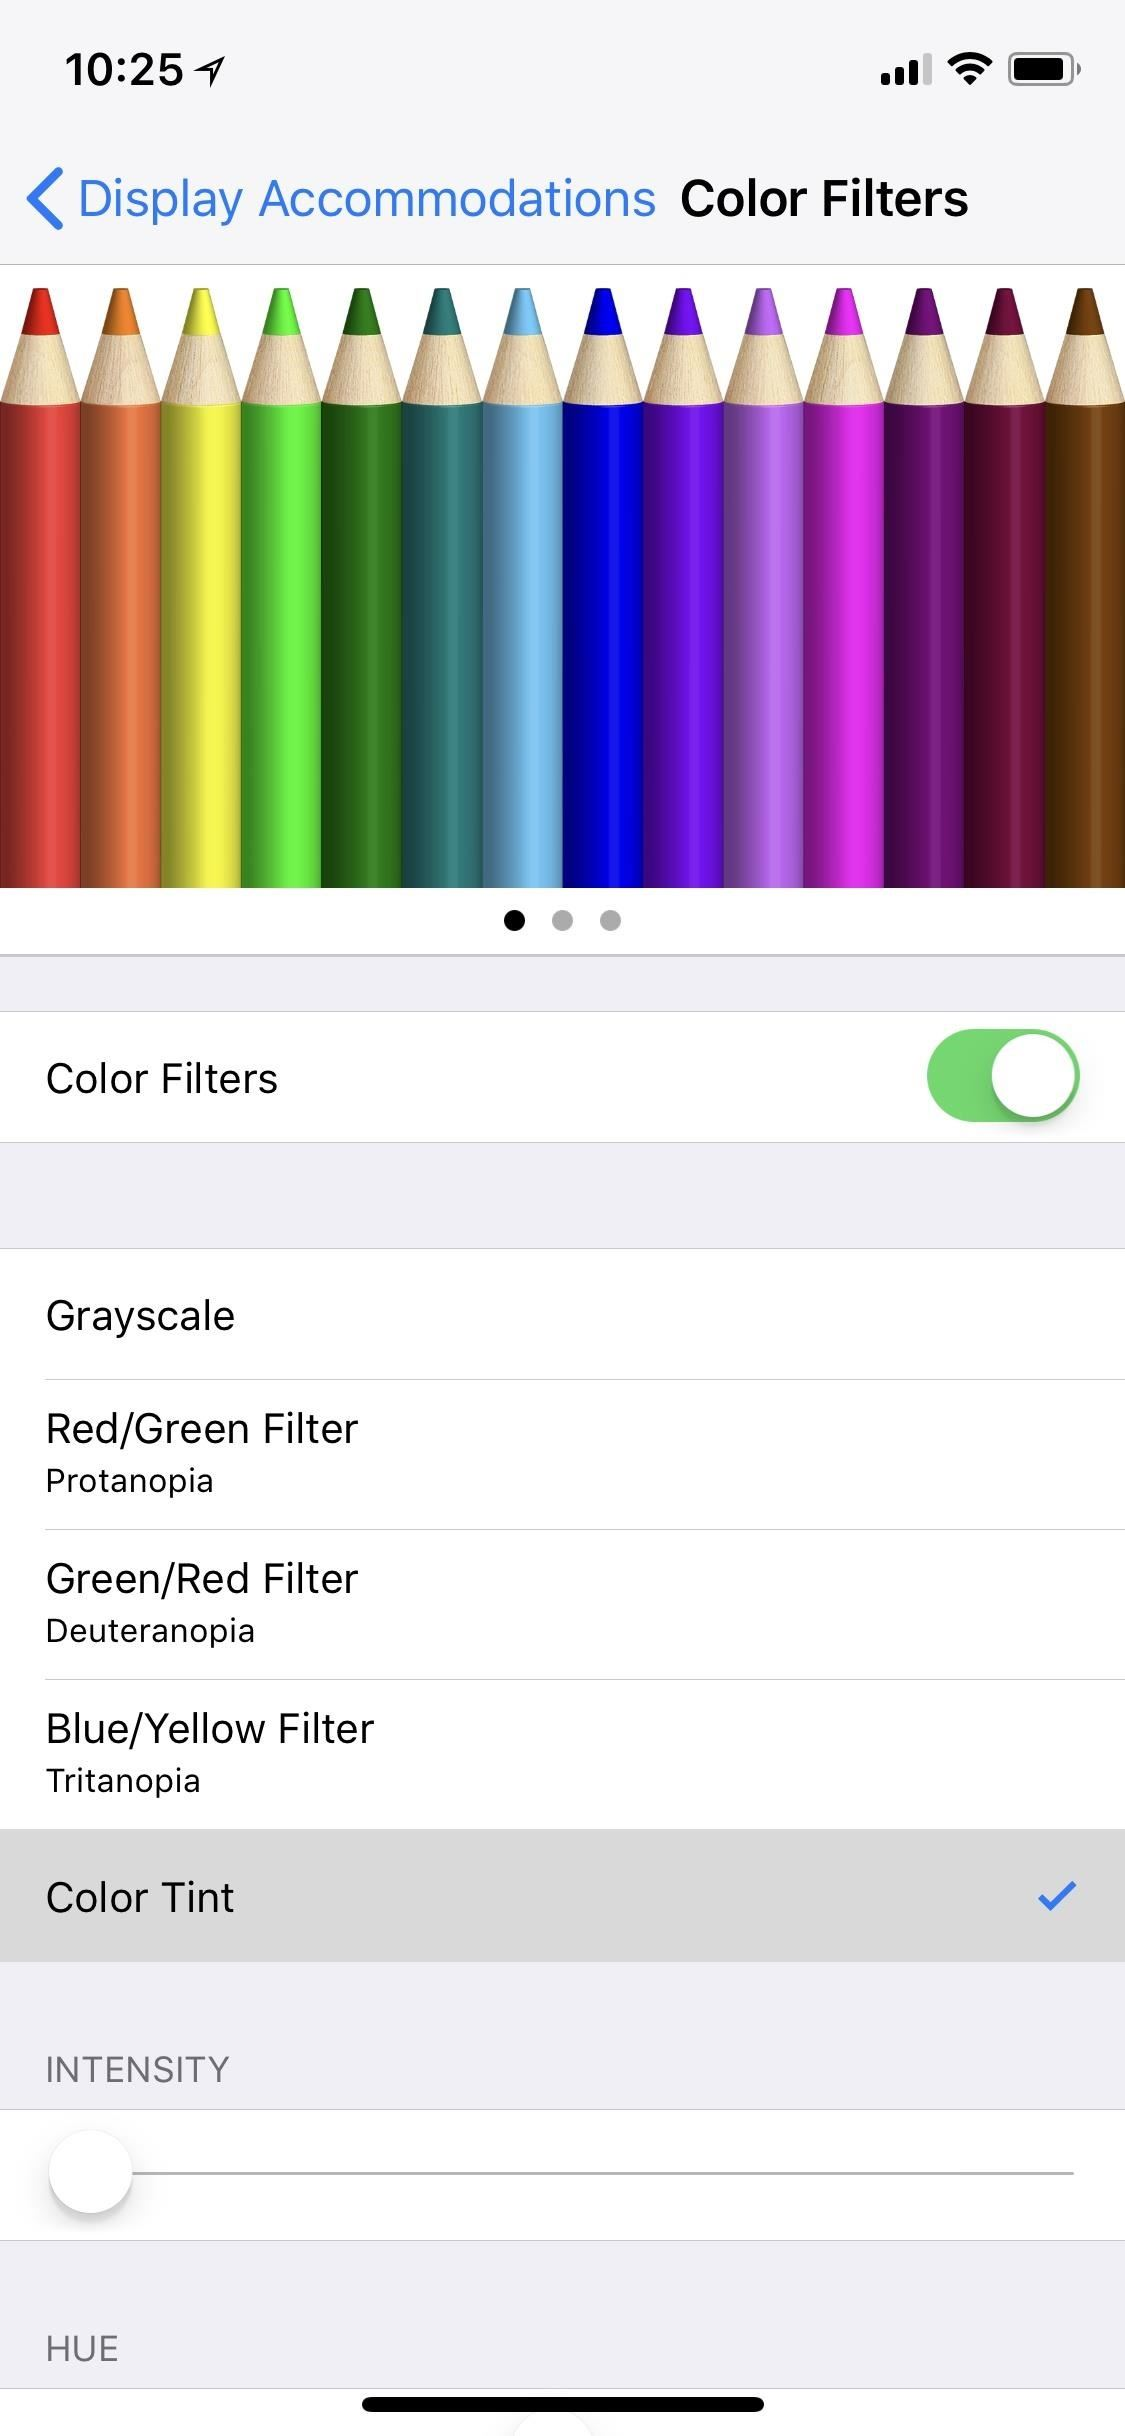 The Ultimate Guide to Customizing Your iPhone